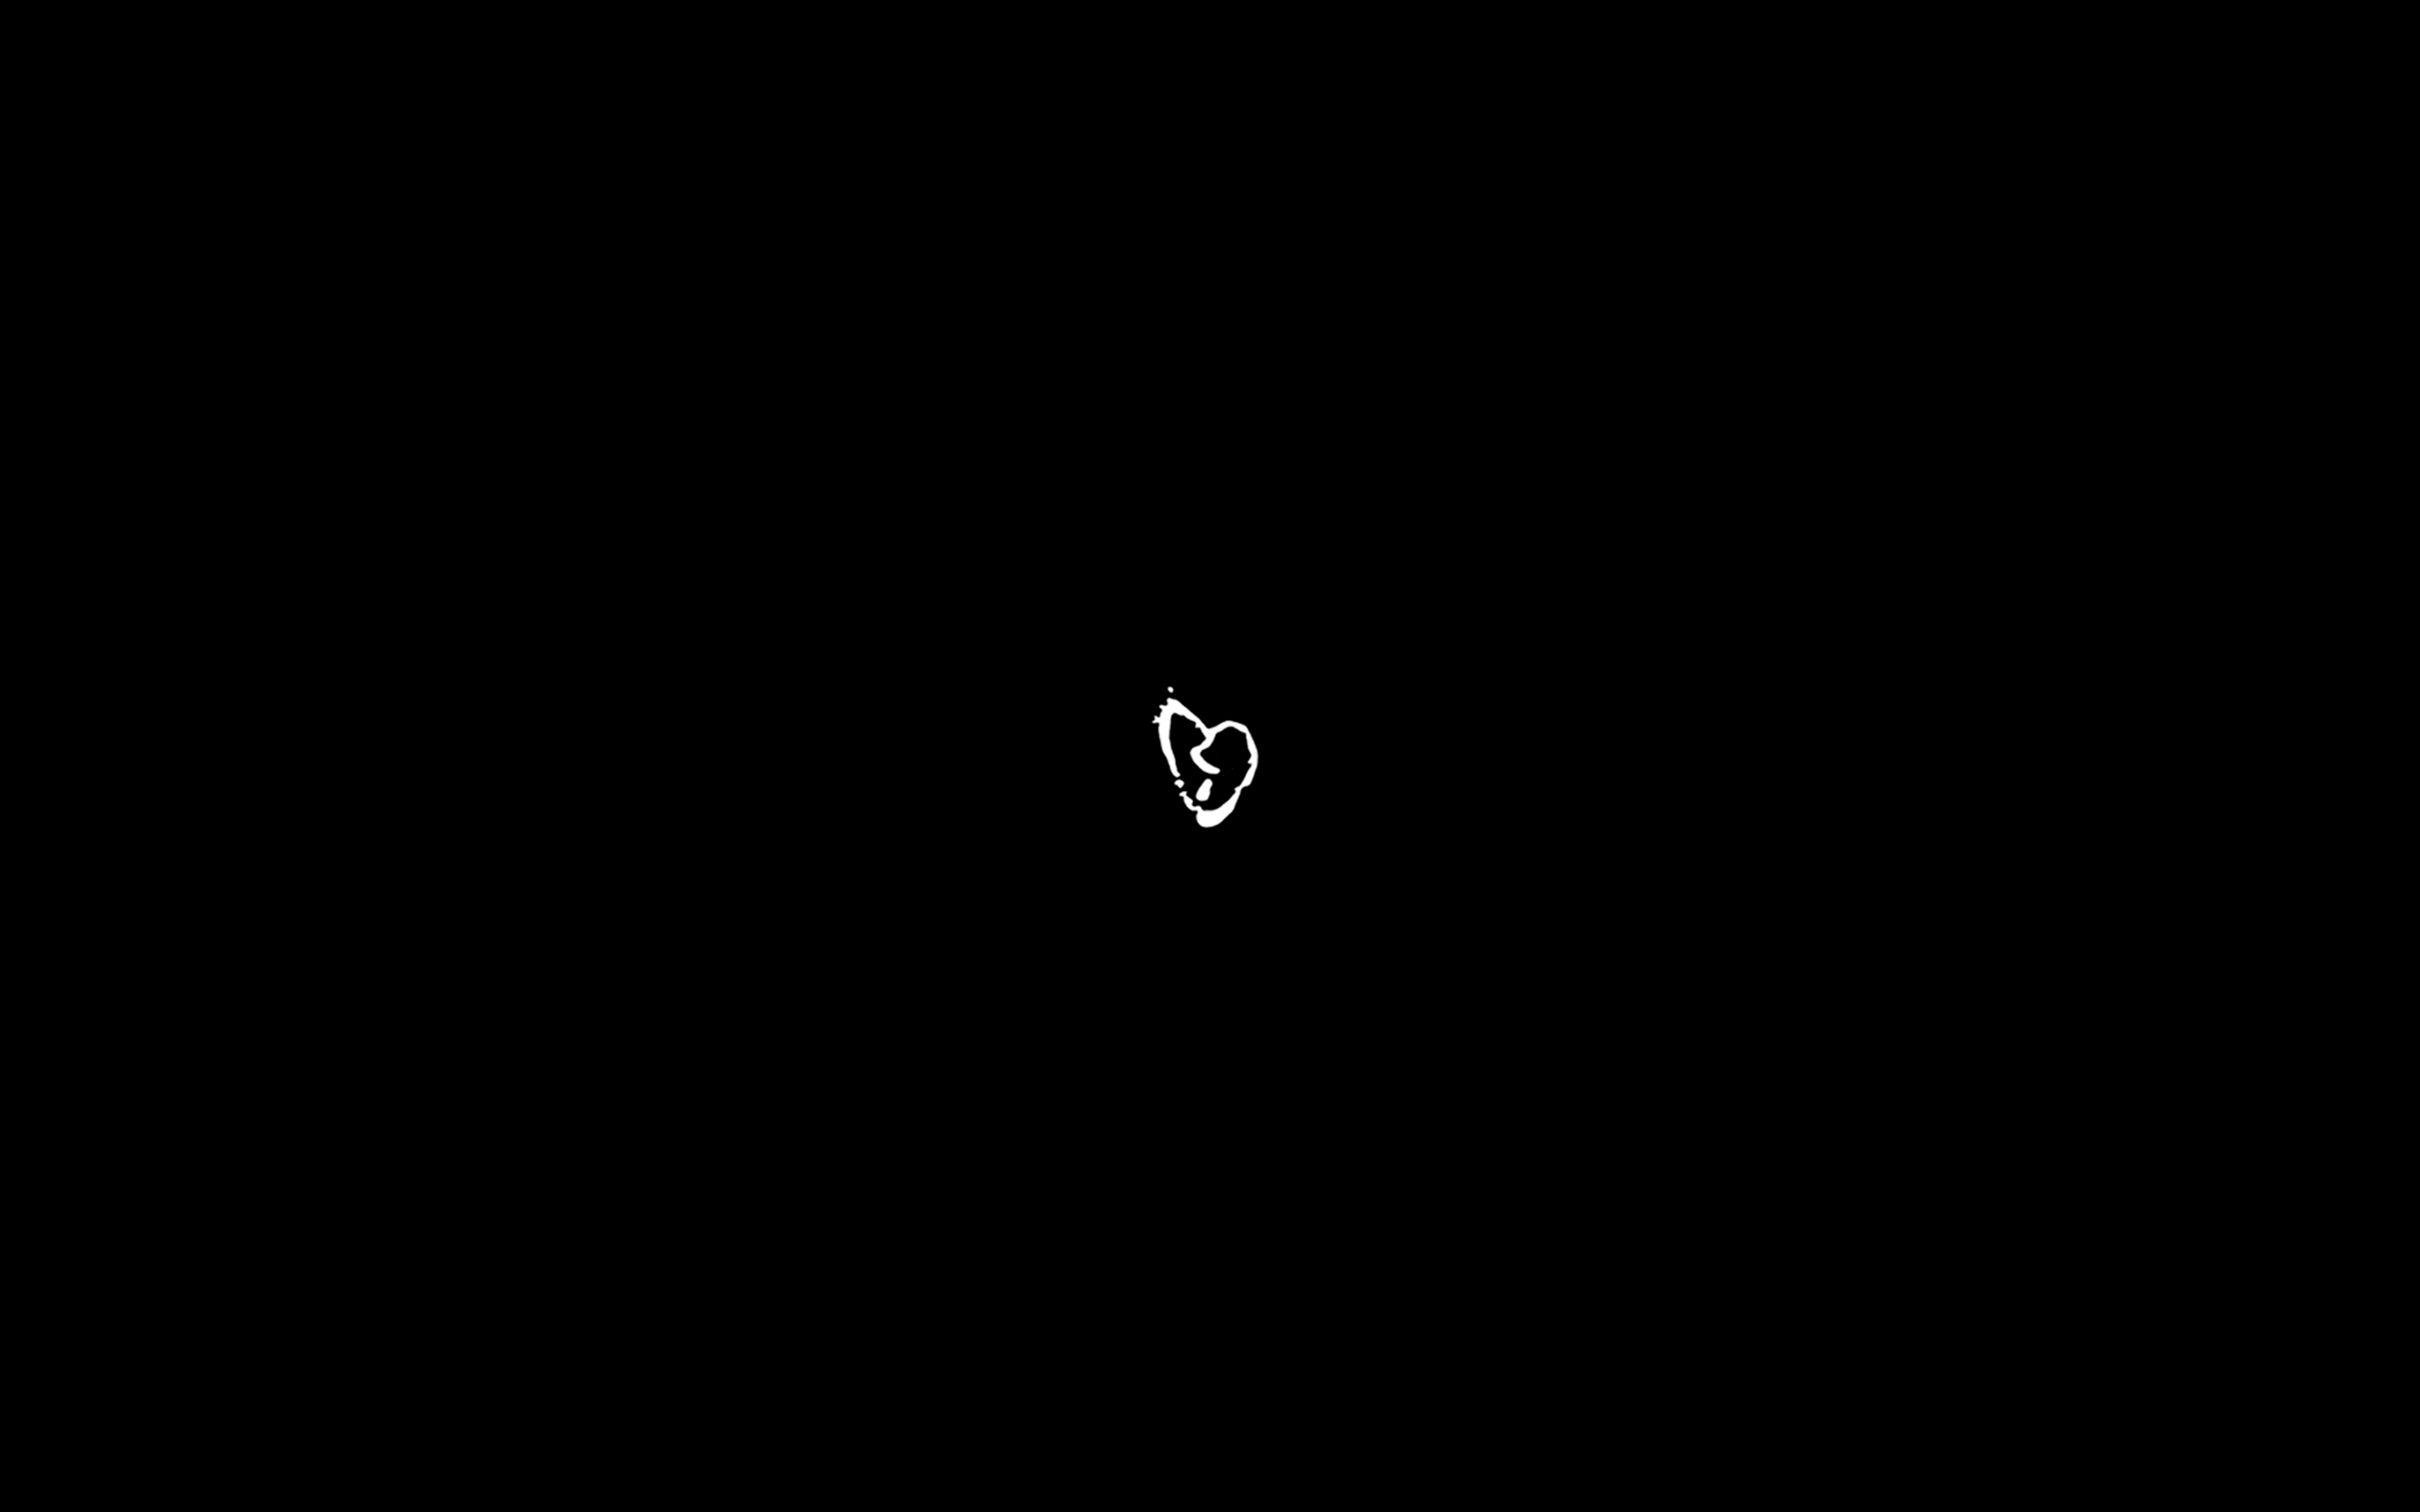 2560x1600 XXXTENTACION WALLPAPERS - Album on Imgur